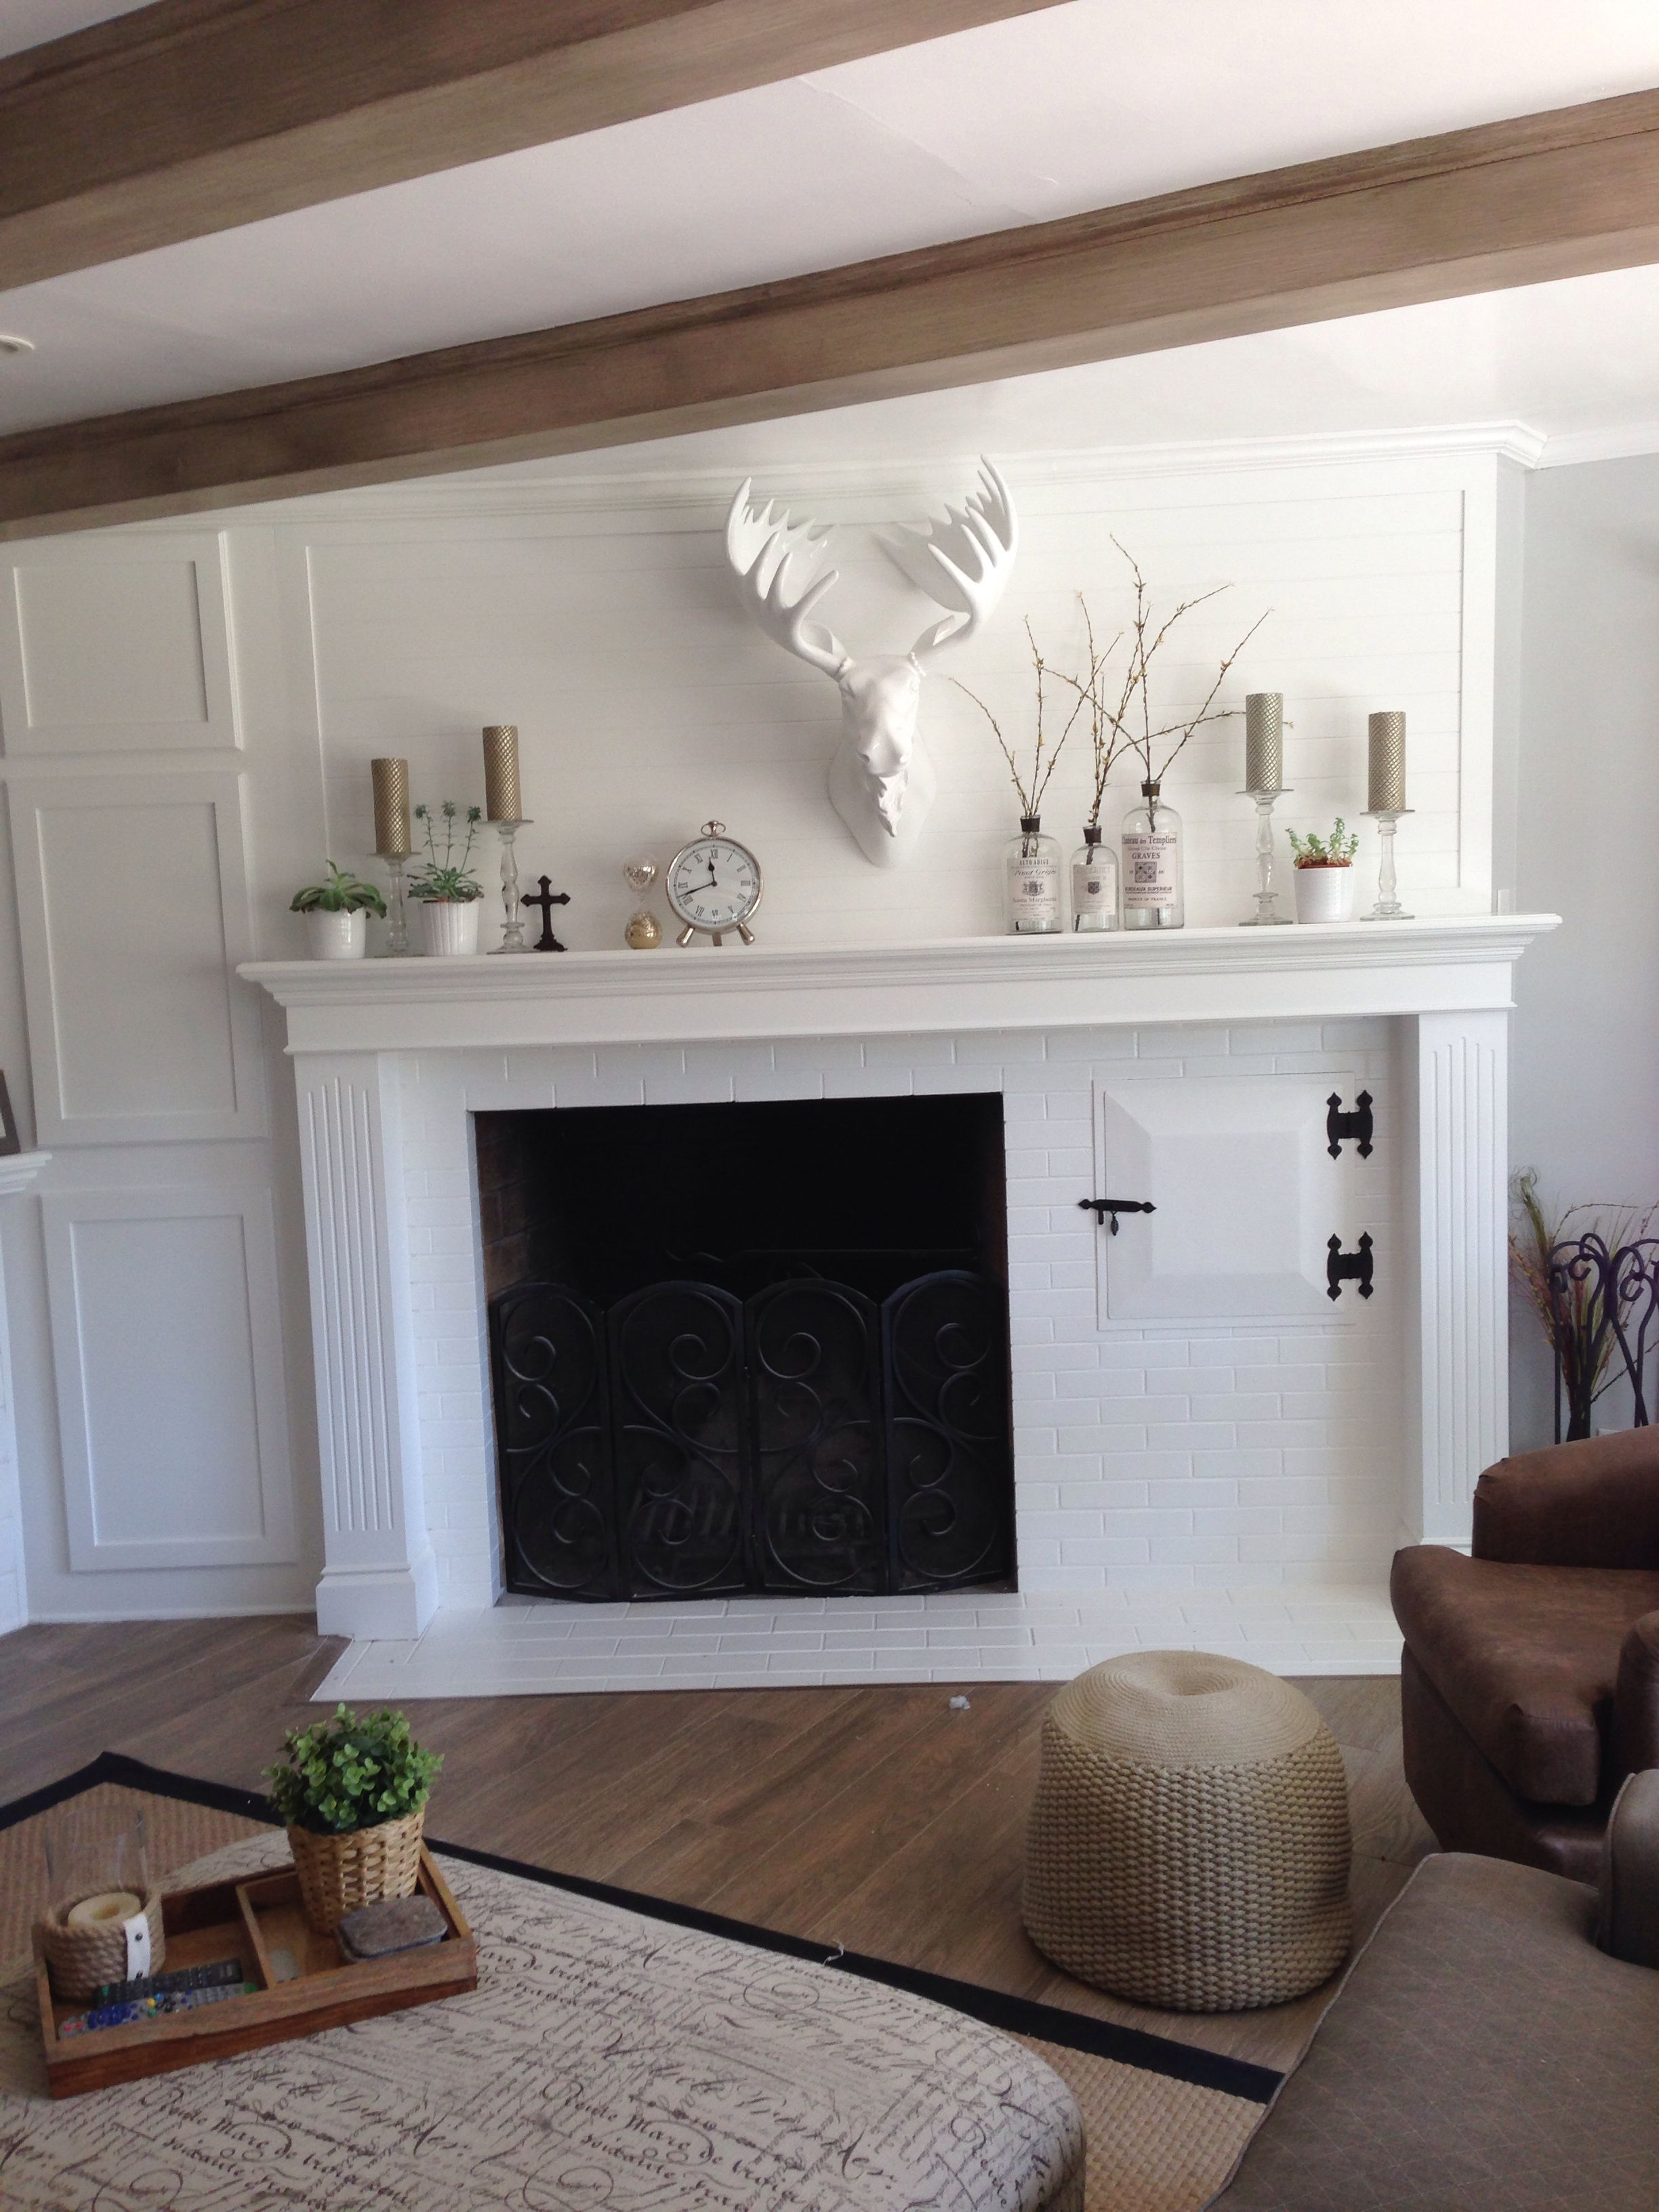 My Finished Mantle Hard To Design Around The Off Centered Fireplace And Wood Storage But I Guess It Ref Fireplace Remodel Home Fireplace Off Center Fireplace